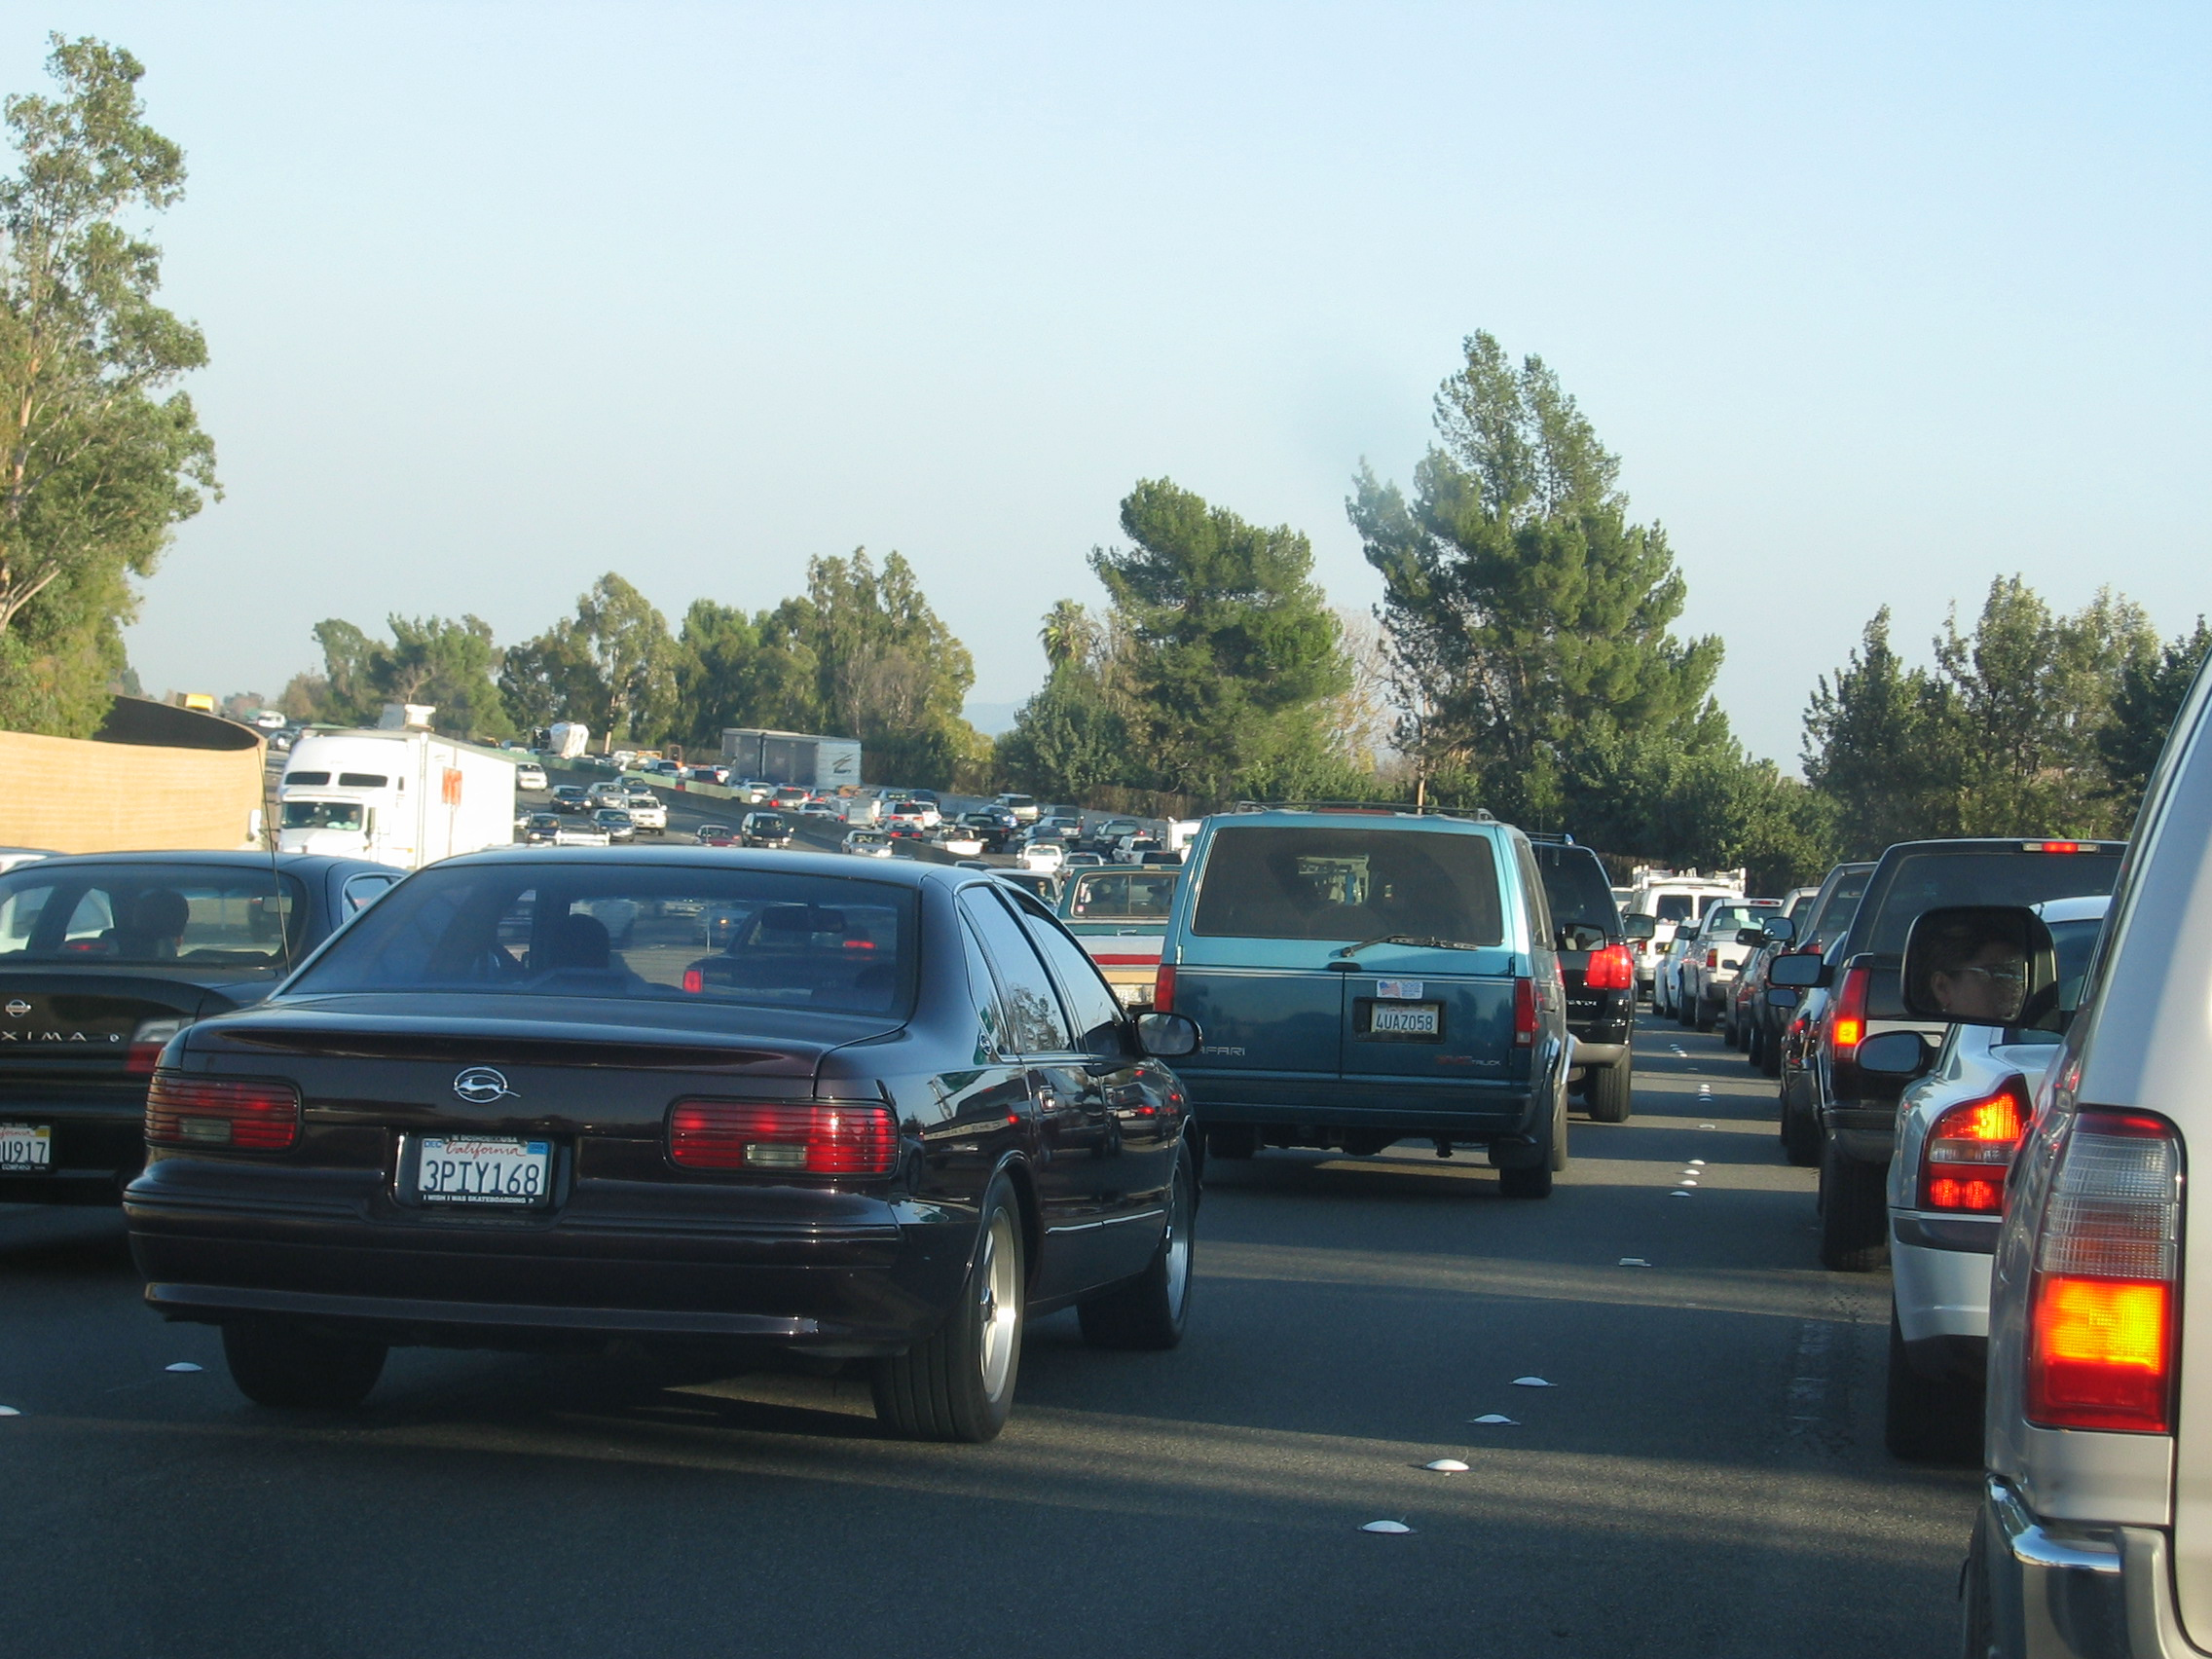 Drivers waste an average of 56 hours per week stuck in traffic.